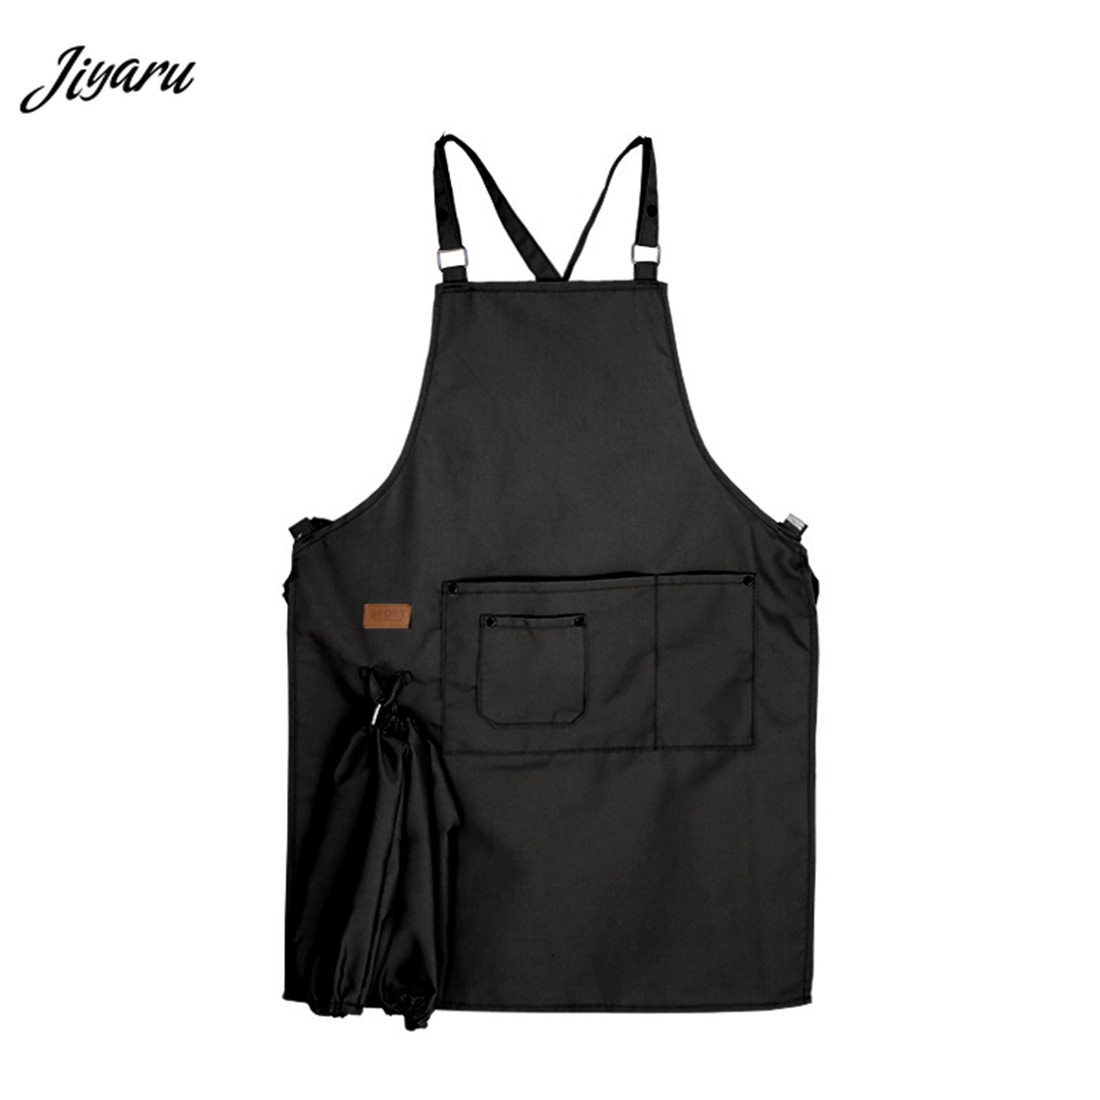 2019 New Arrival Unisex Aprons Women Men Adjustable Kitchen Aprons for Cooking Baking Restaurant Cooking Sleeveless Aprons